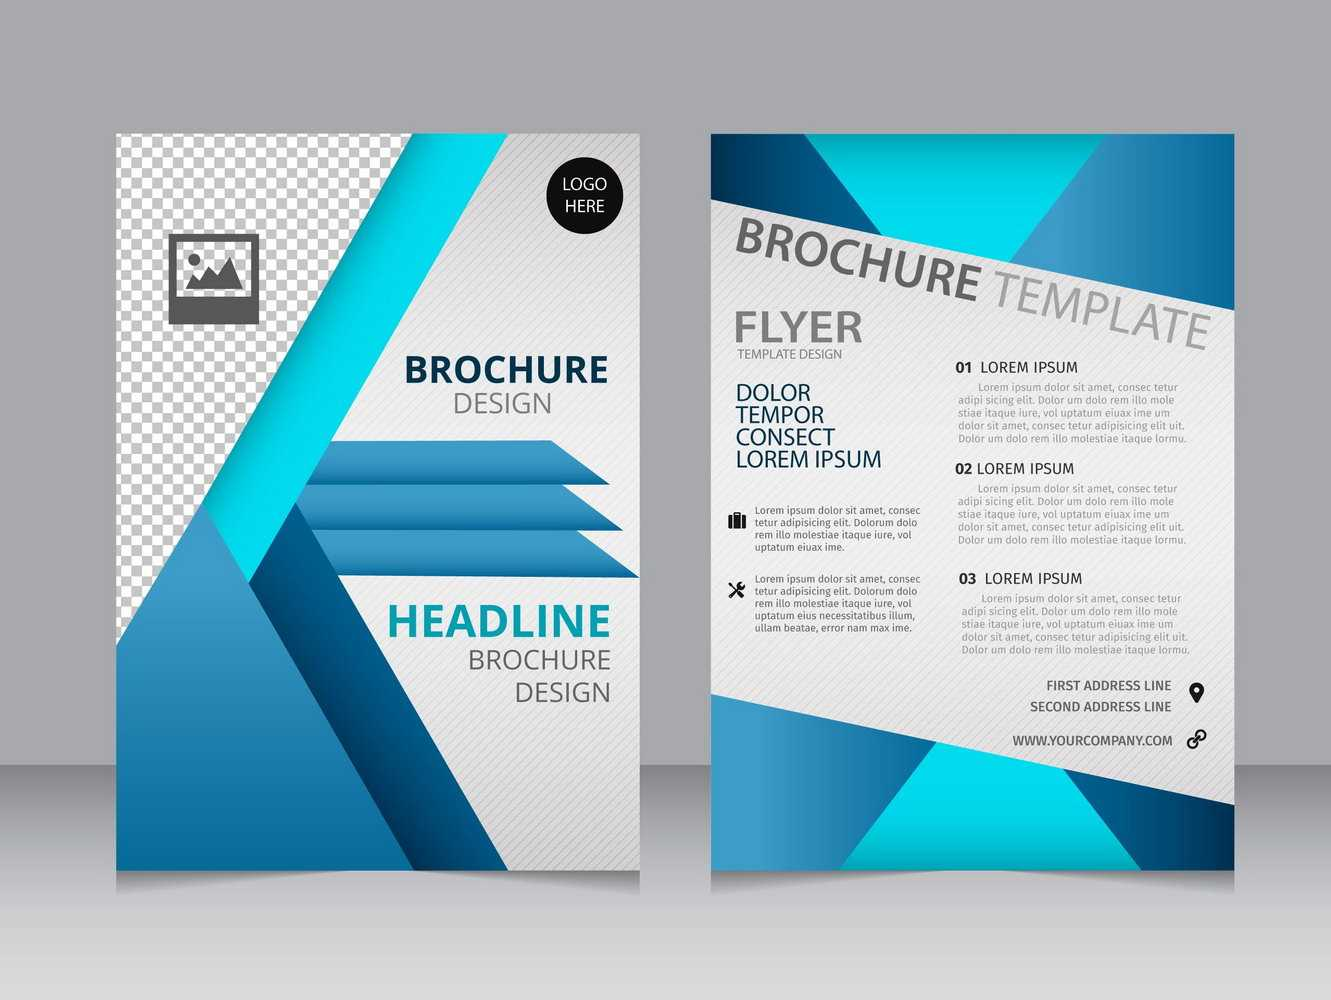 005 Blank Brochure Templates Free Download Word Template Regarding Illustrator Brochure Templates Free Download